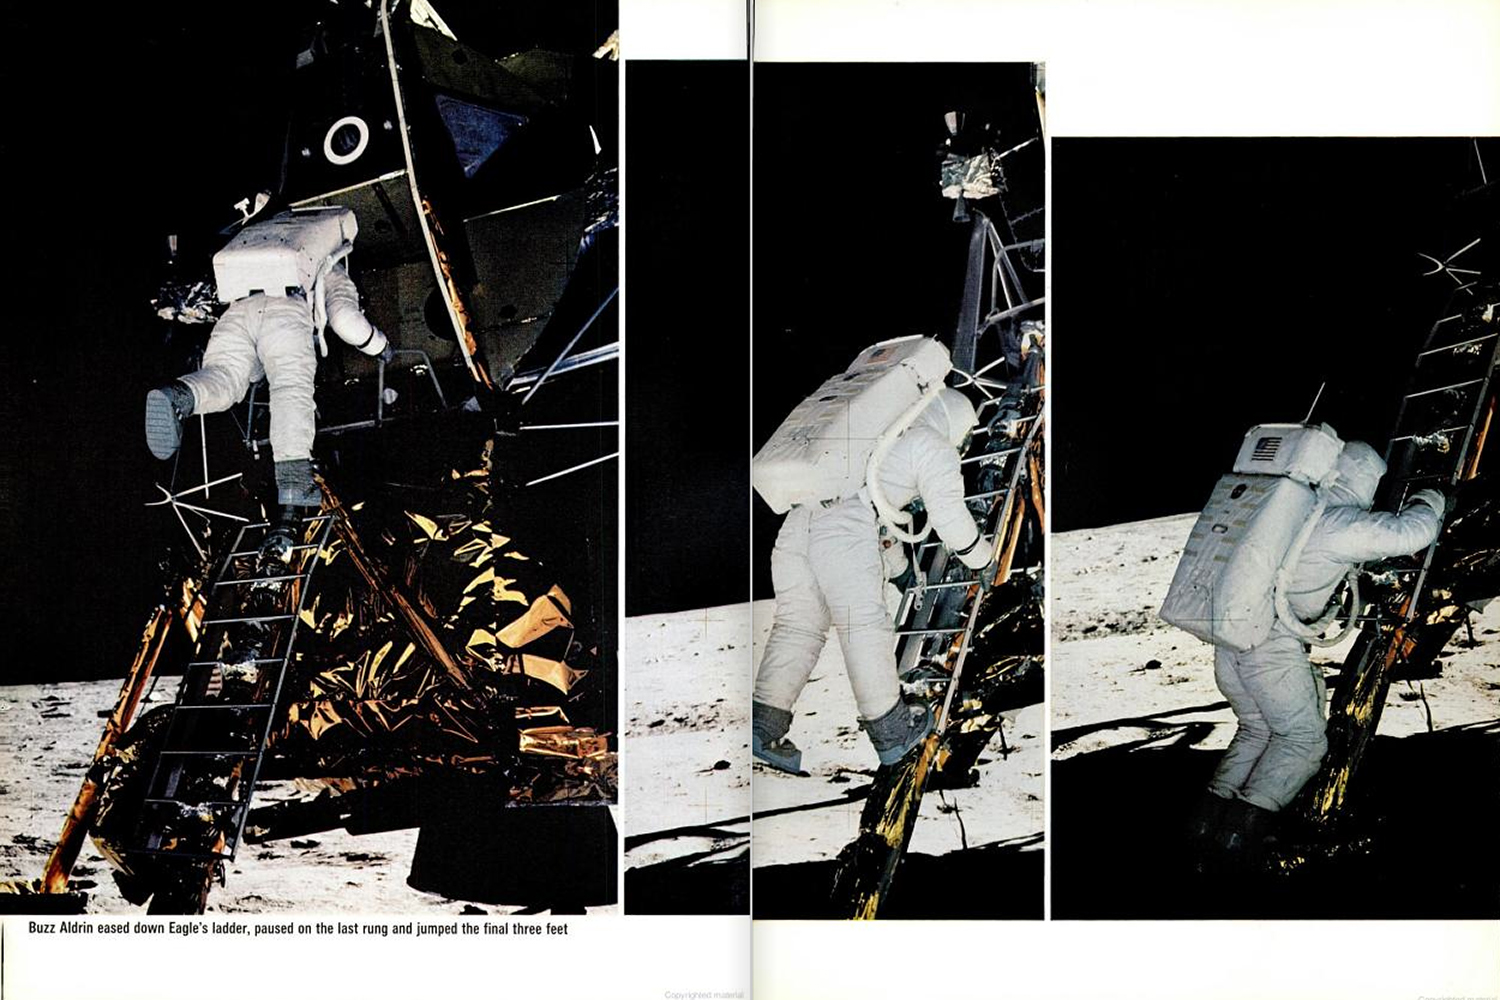 "<b>LIFE magazine Special Edition, August 11, 1969.</b> ""Buzz Aldrin eased down <em>Eagle</em>'s ladder, paused on the last rung and jumped the final three feet."""